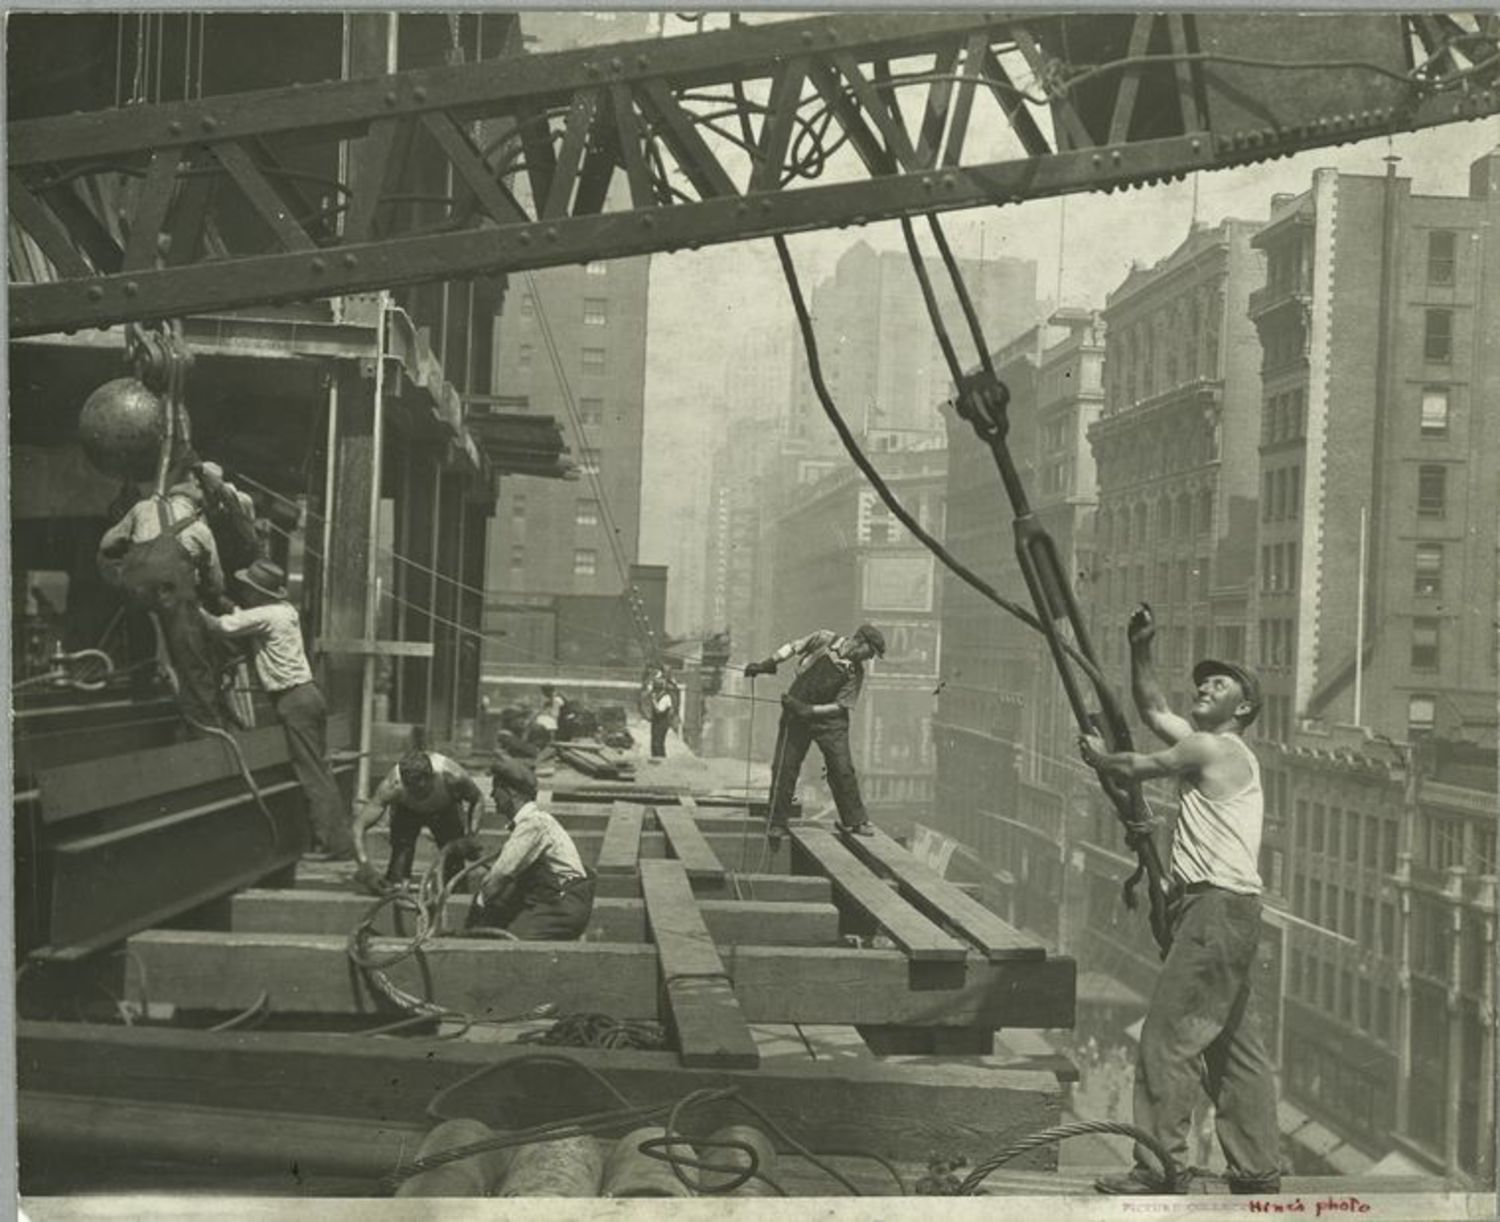 Vintage Health and Safety - Building Empire State Building | Vintage Health and Safety Photos - Empire State Building